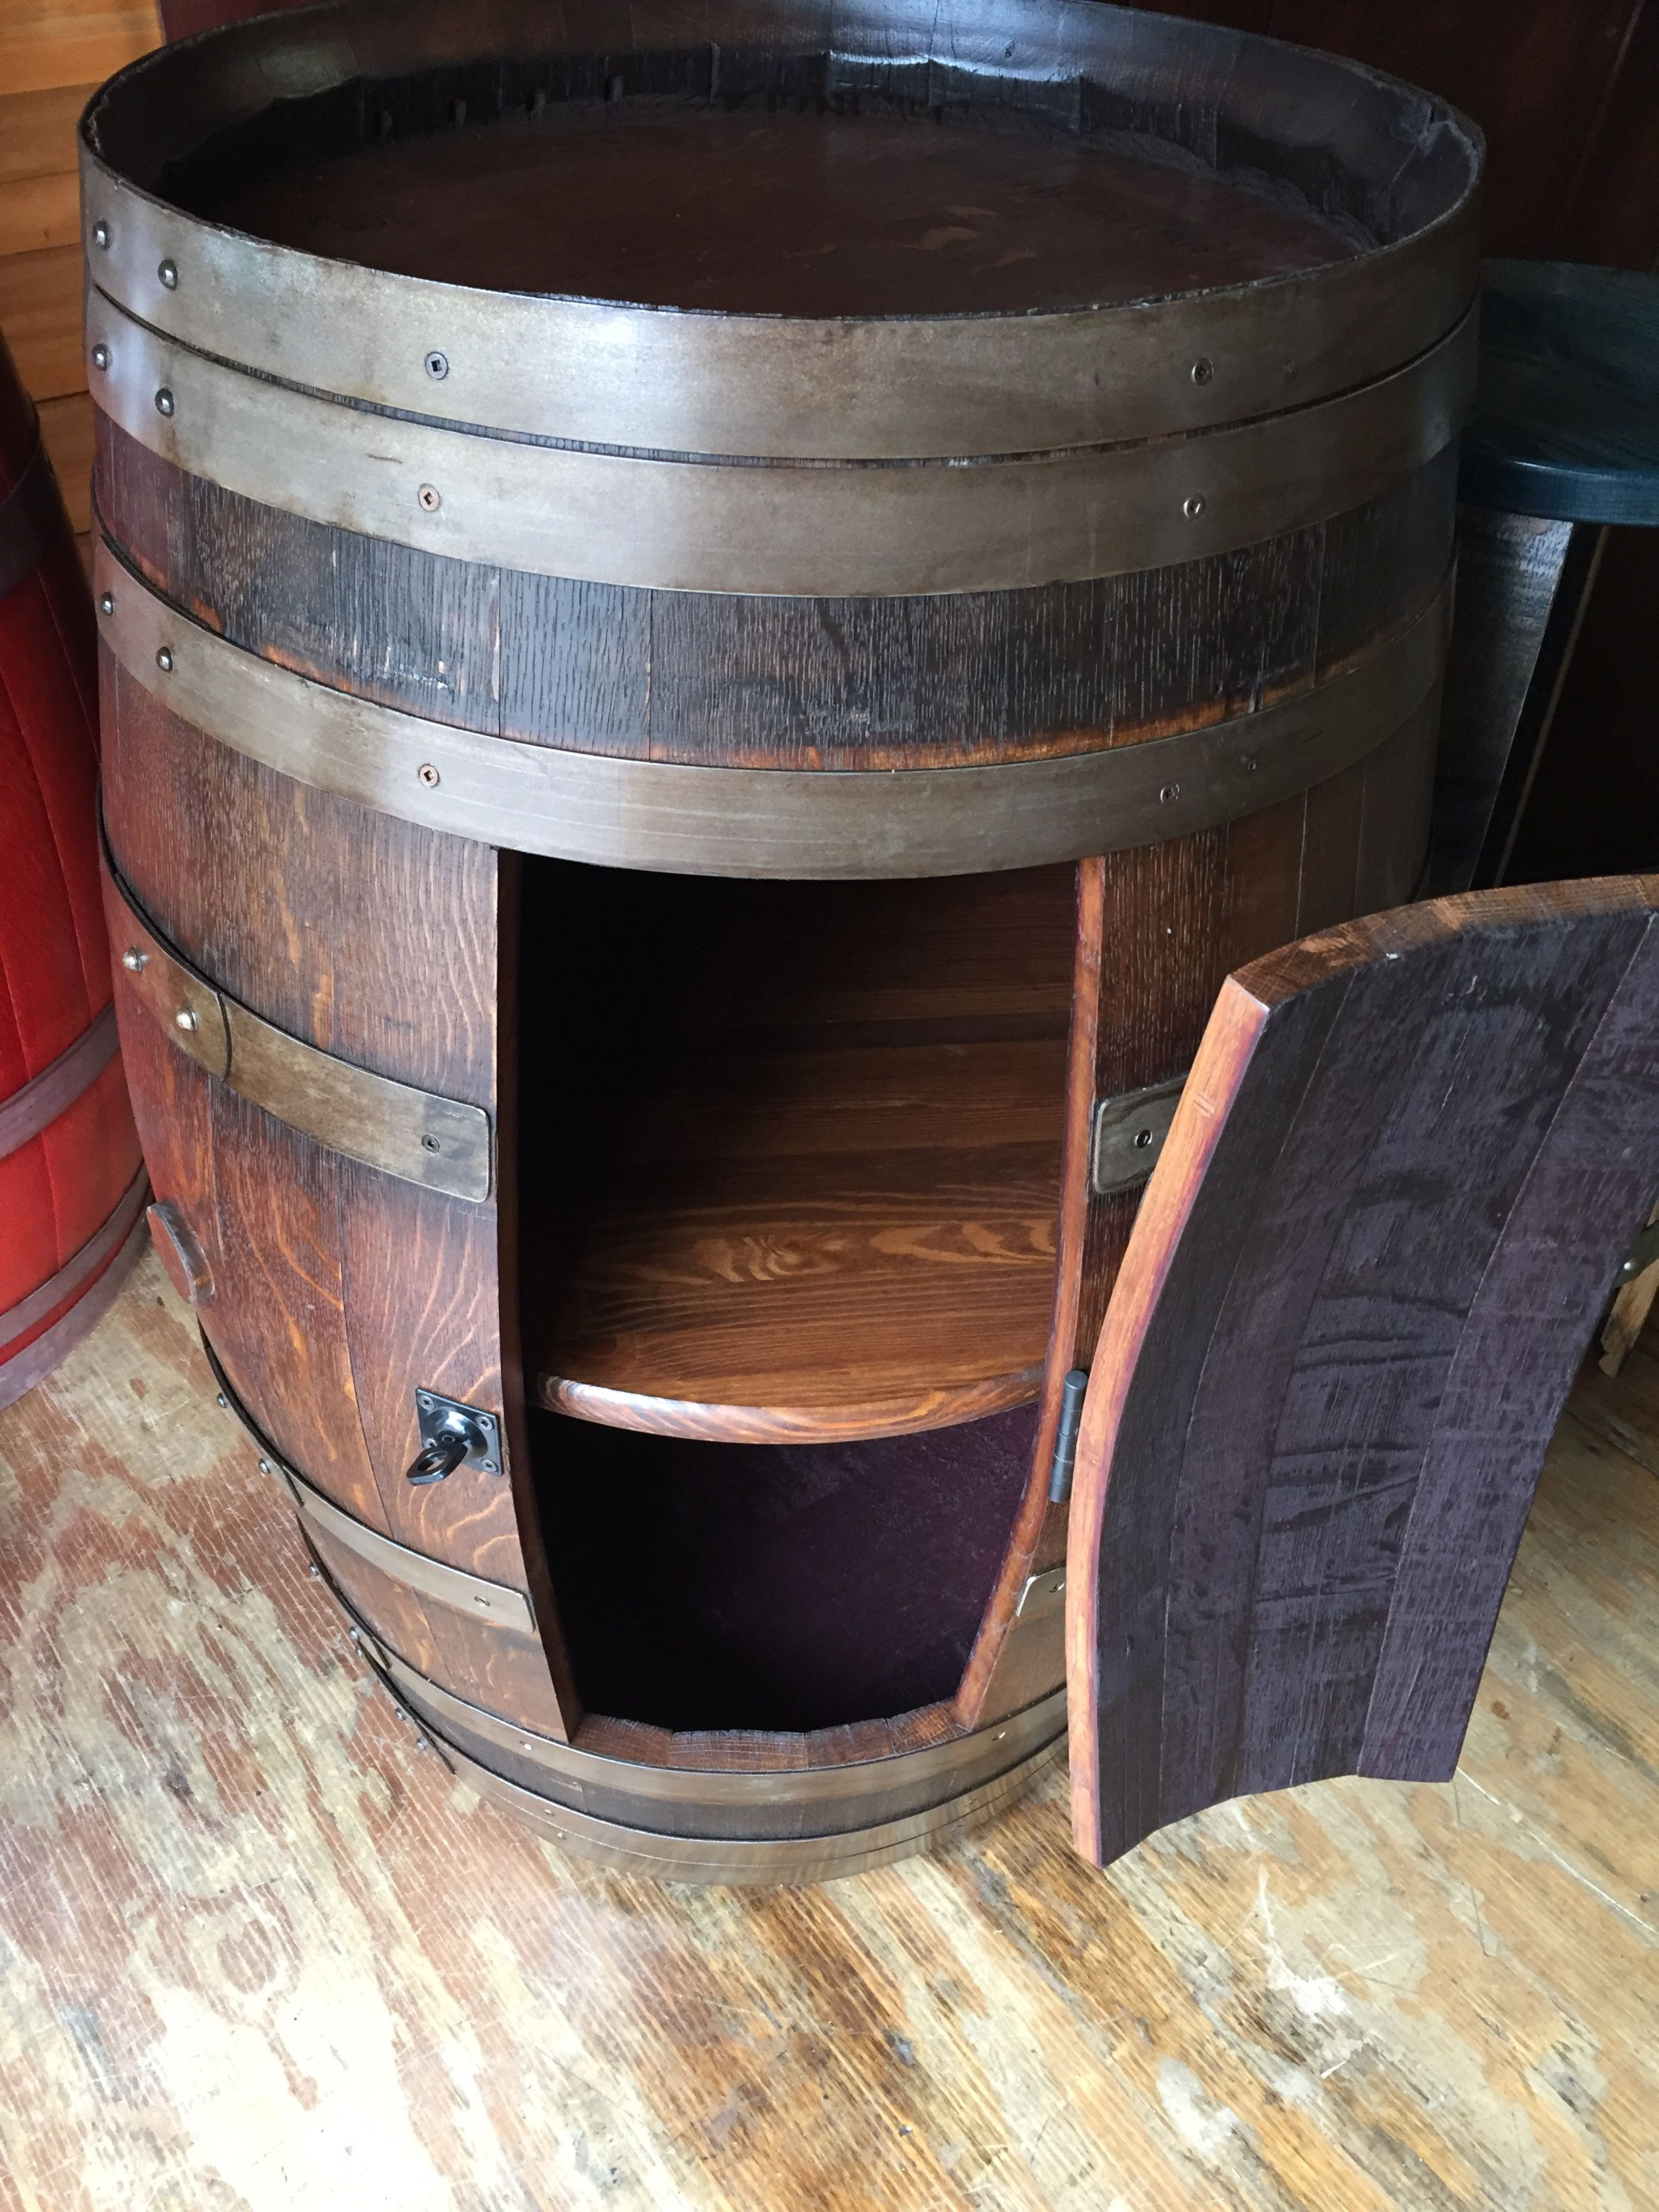 Storage oak wine barrels Liter This Vintage Cargo Wine Barrel Is Crafted From Reclaimed Oak Wine Barrels Great Way Pinterest This Vintage Cargo Wine Barrel Is Crafted From Reclaimed Oak Wine